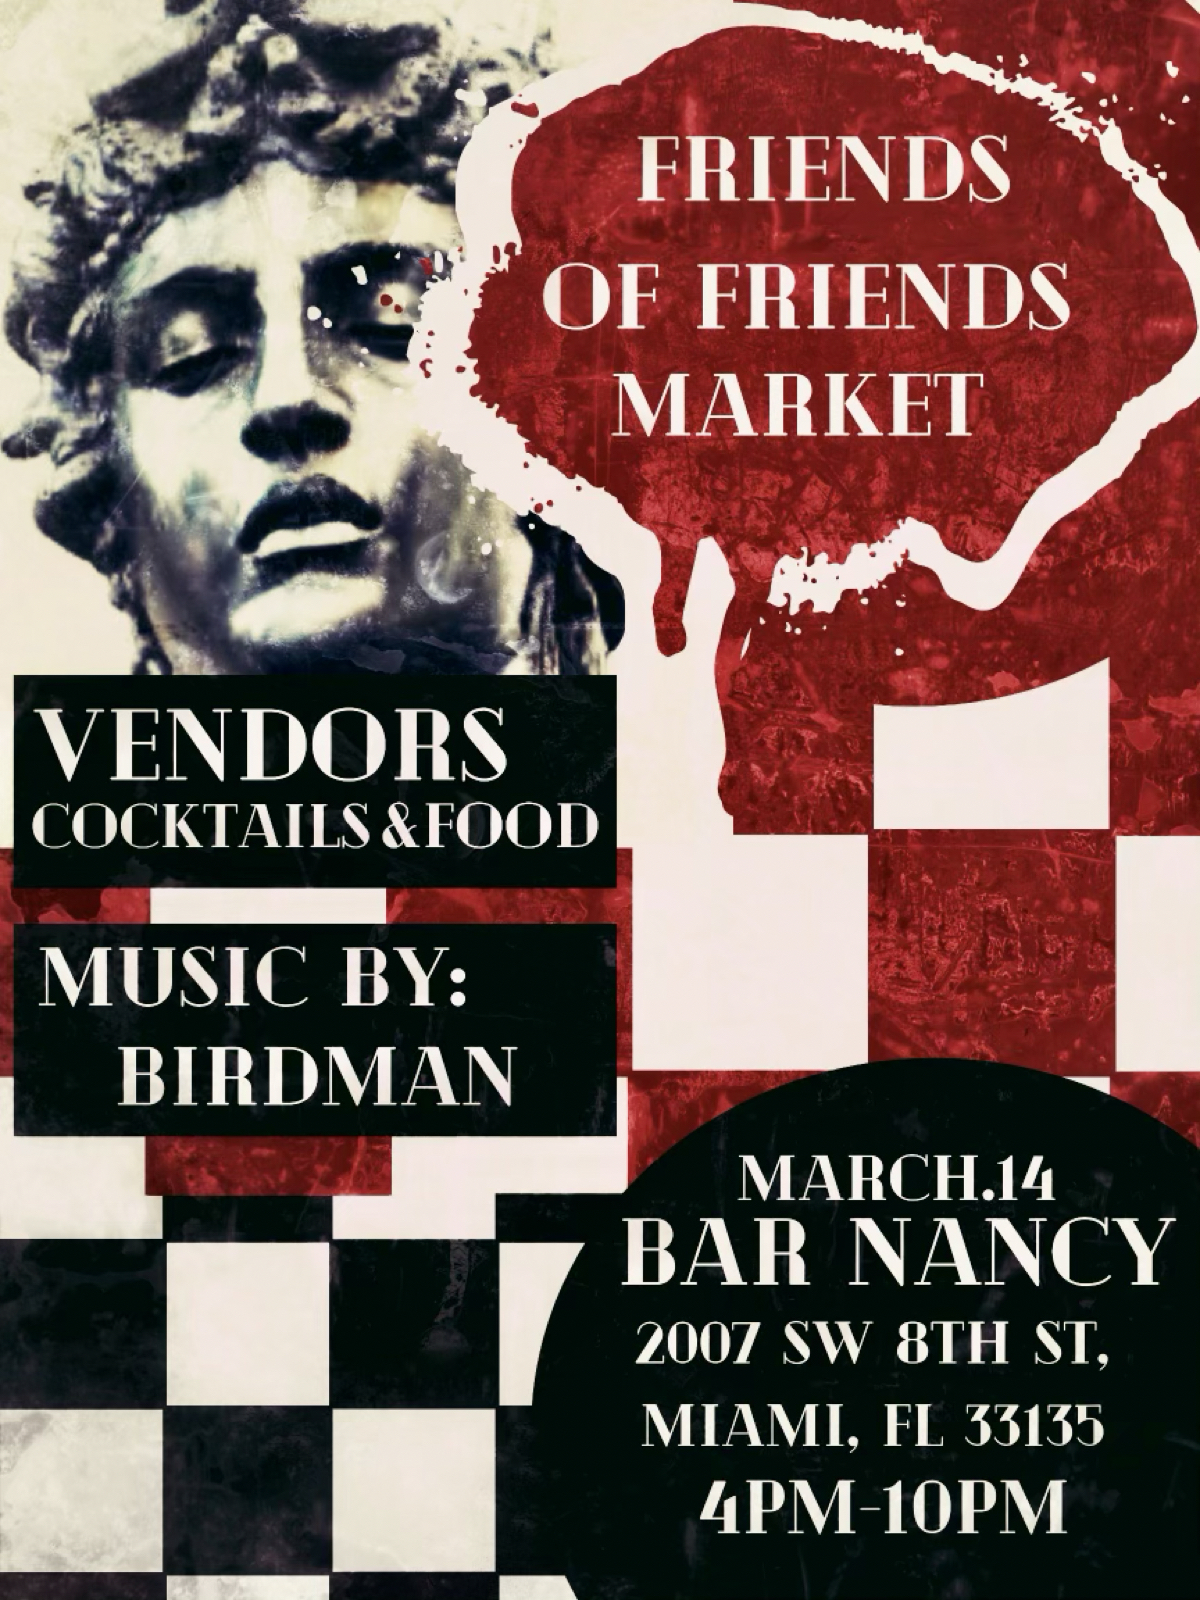 Friends of Friends Market at Bar Nancy - Music by Birdman - March 14 at 4PM